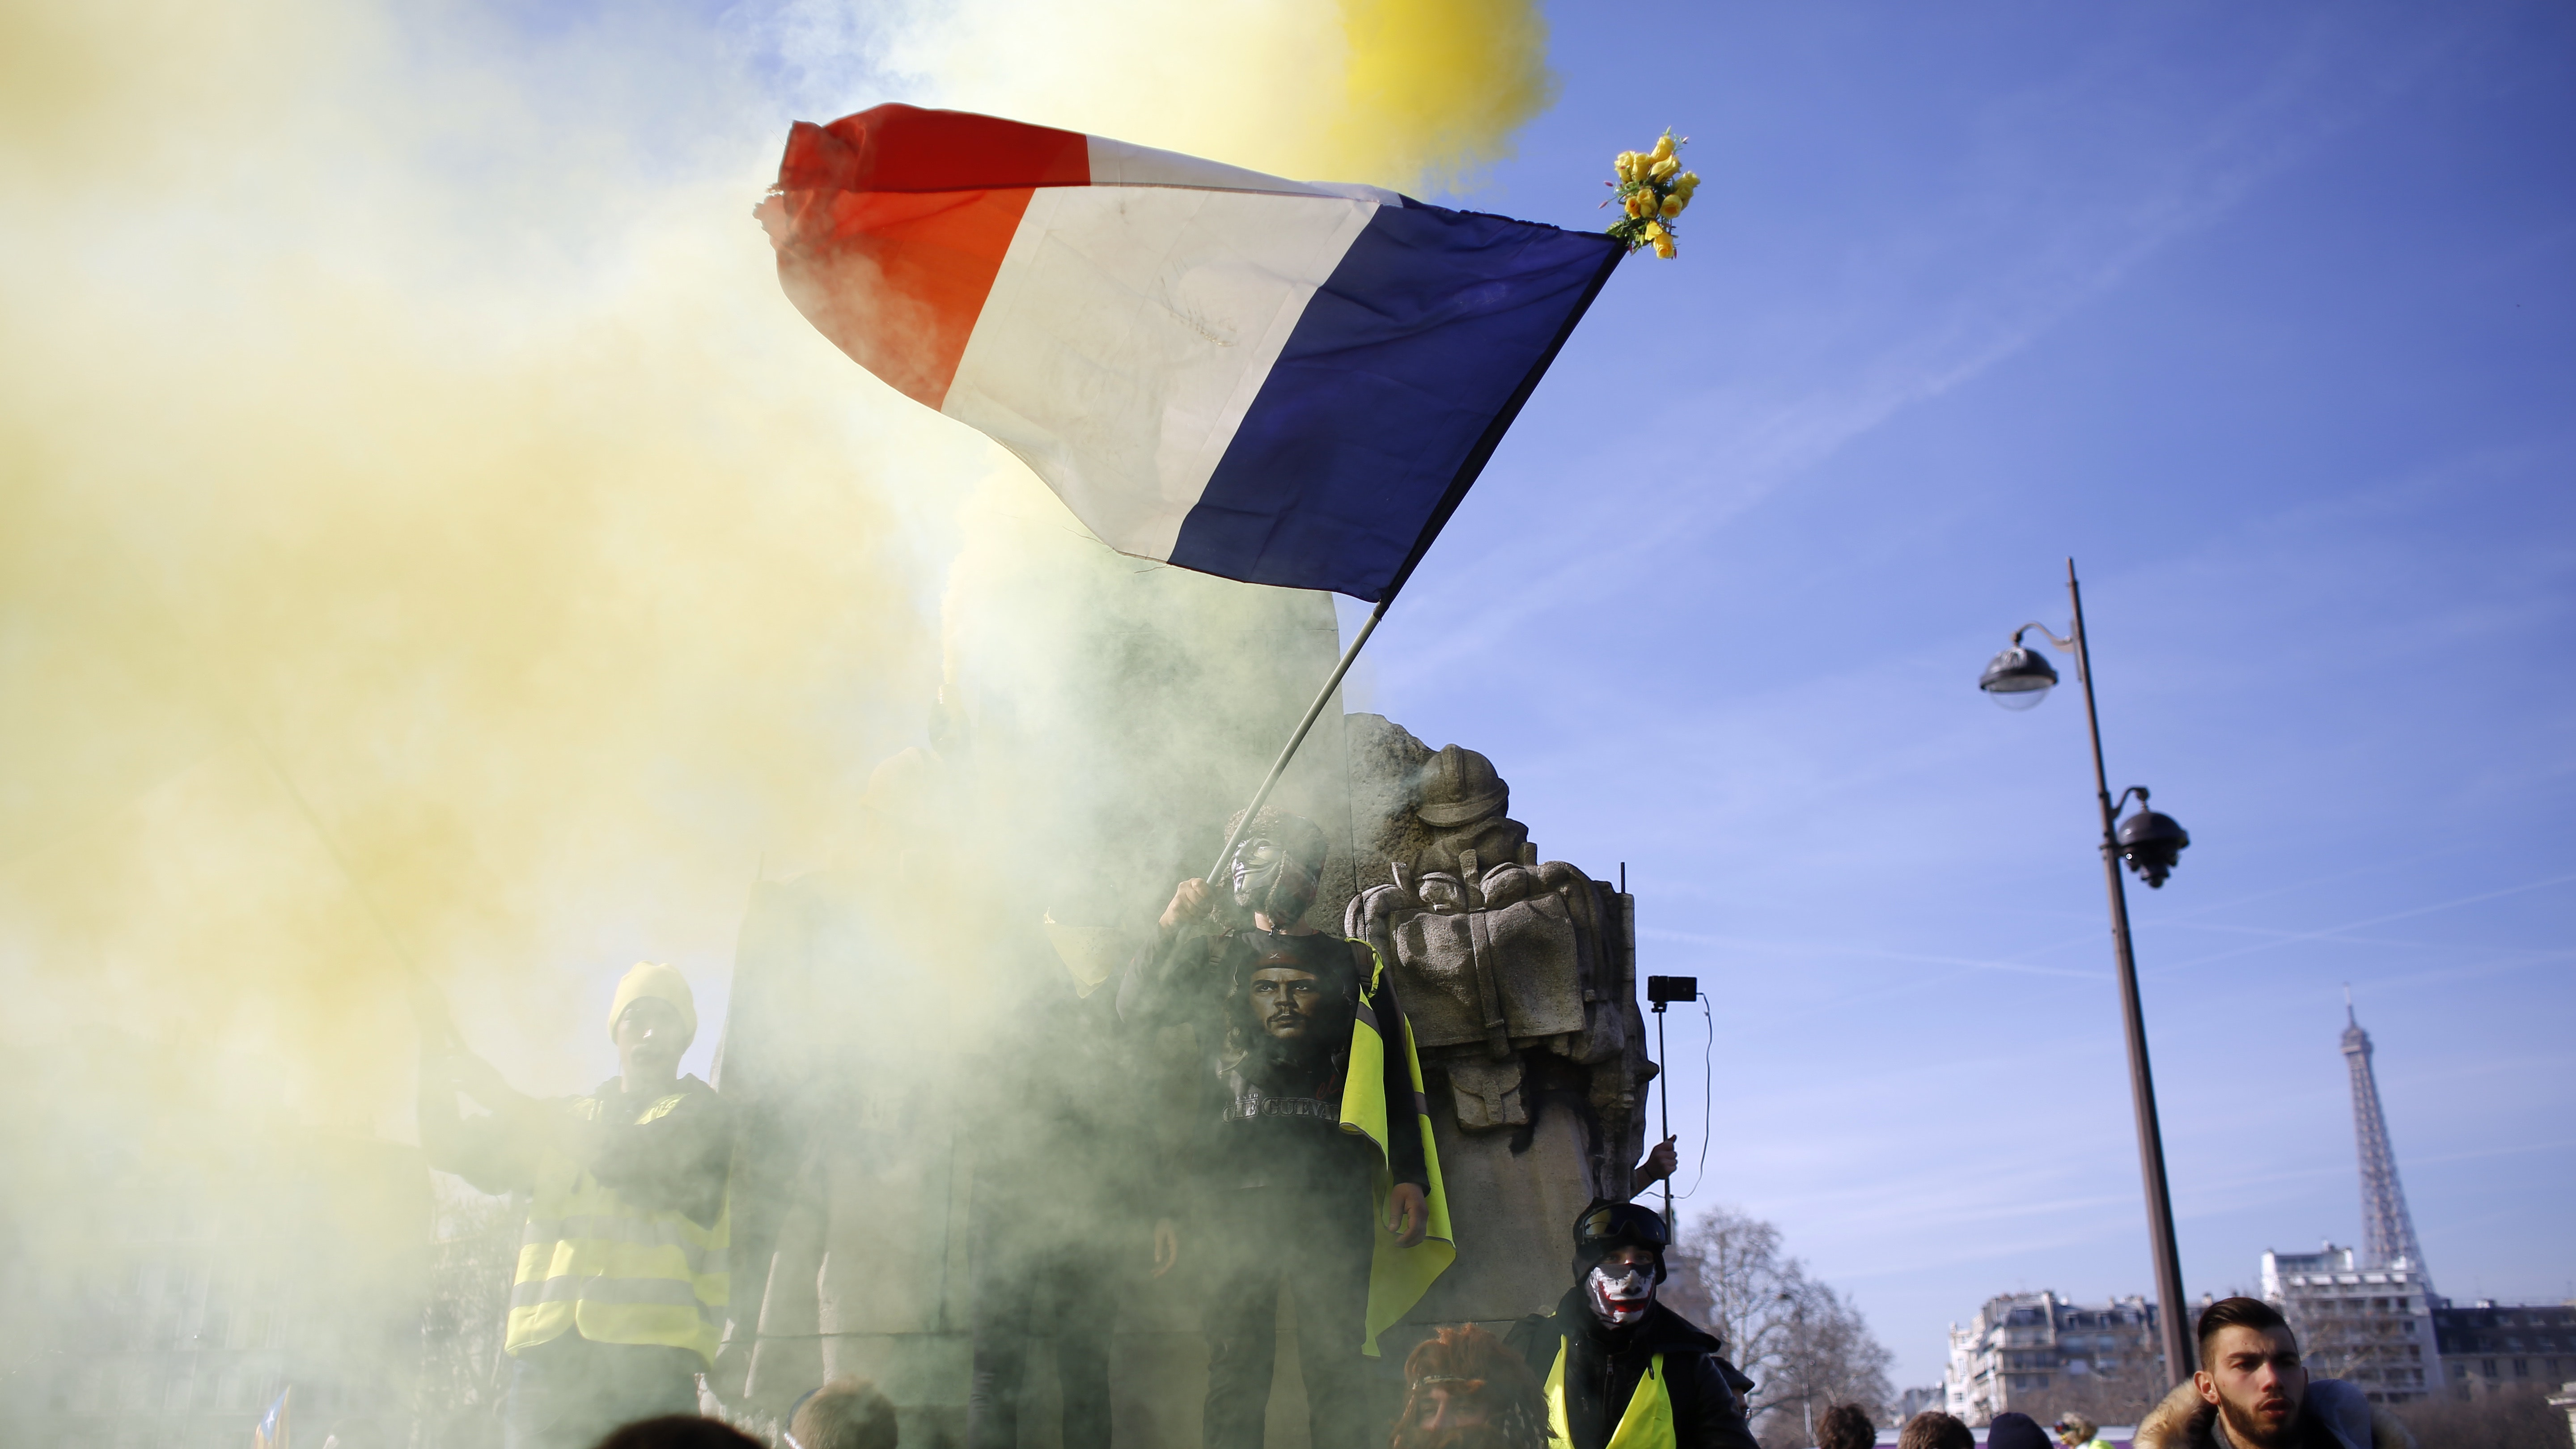 Anti-Semitism probe launched after comments made at yellow vest protest